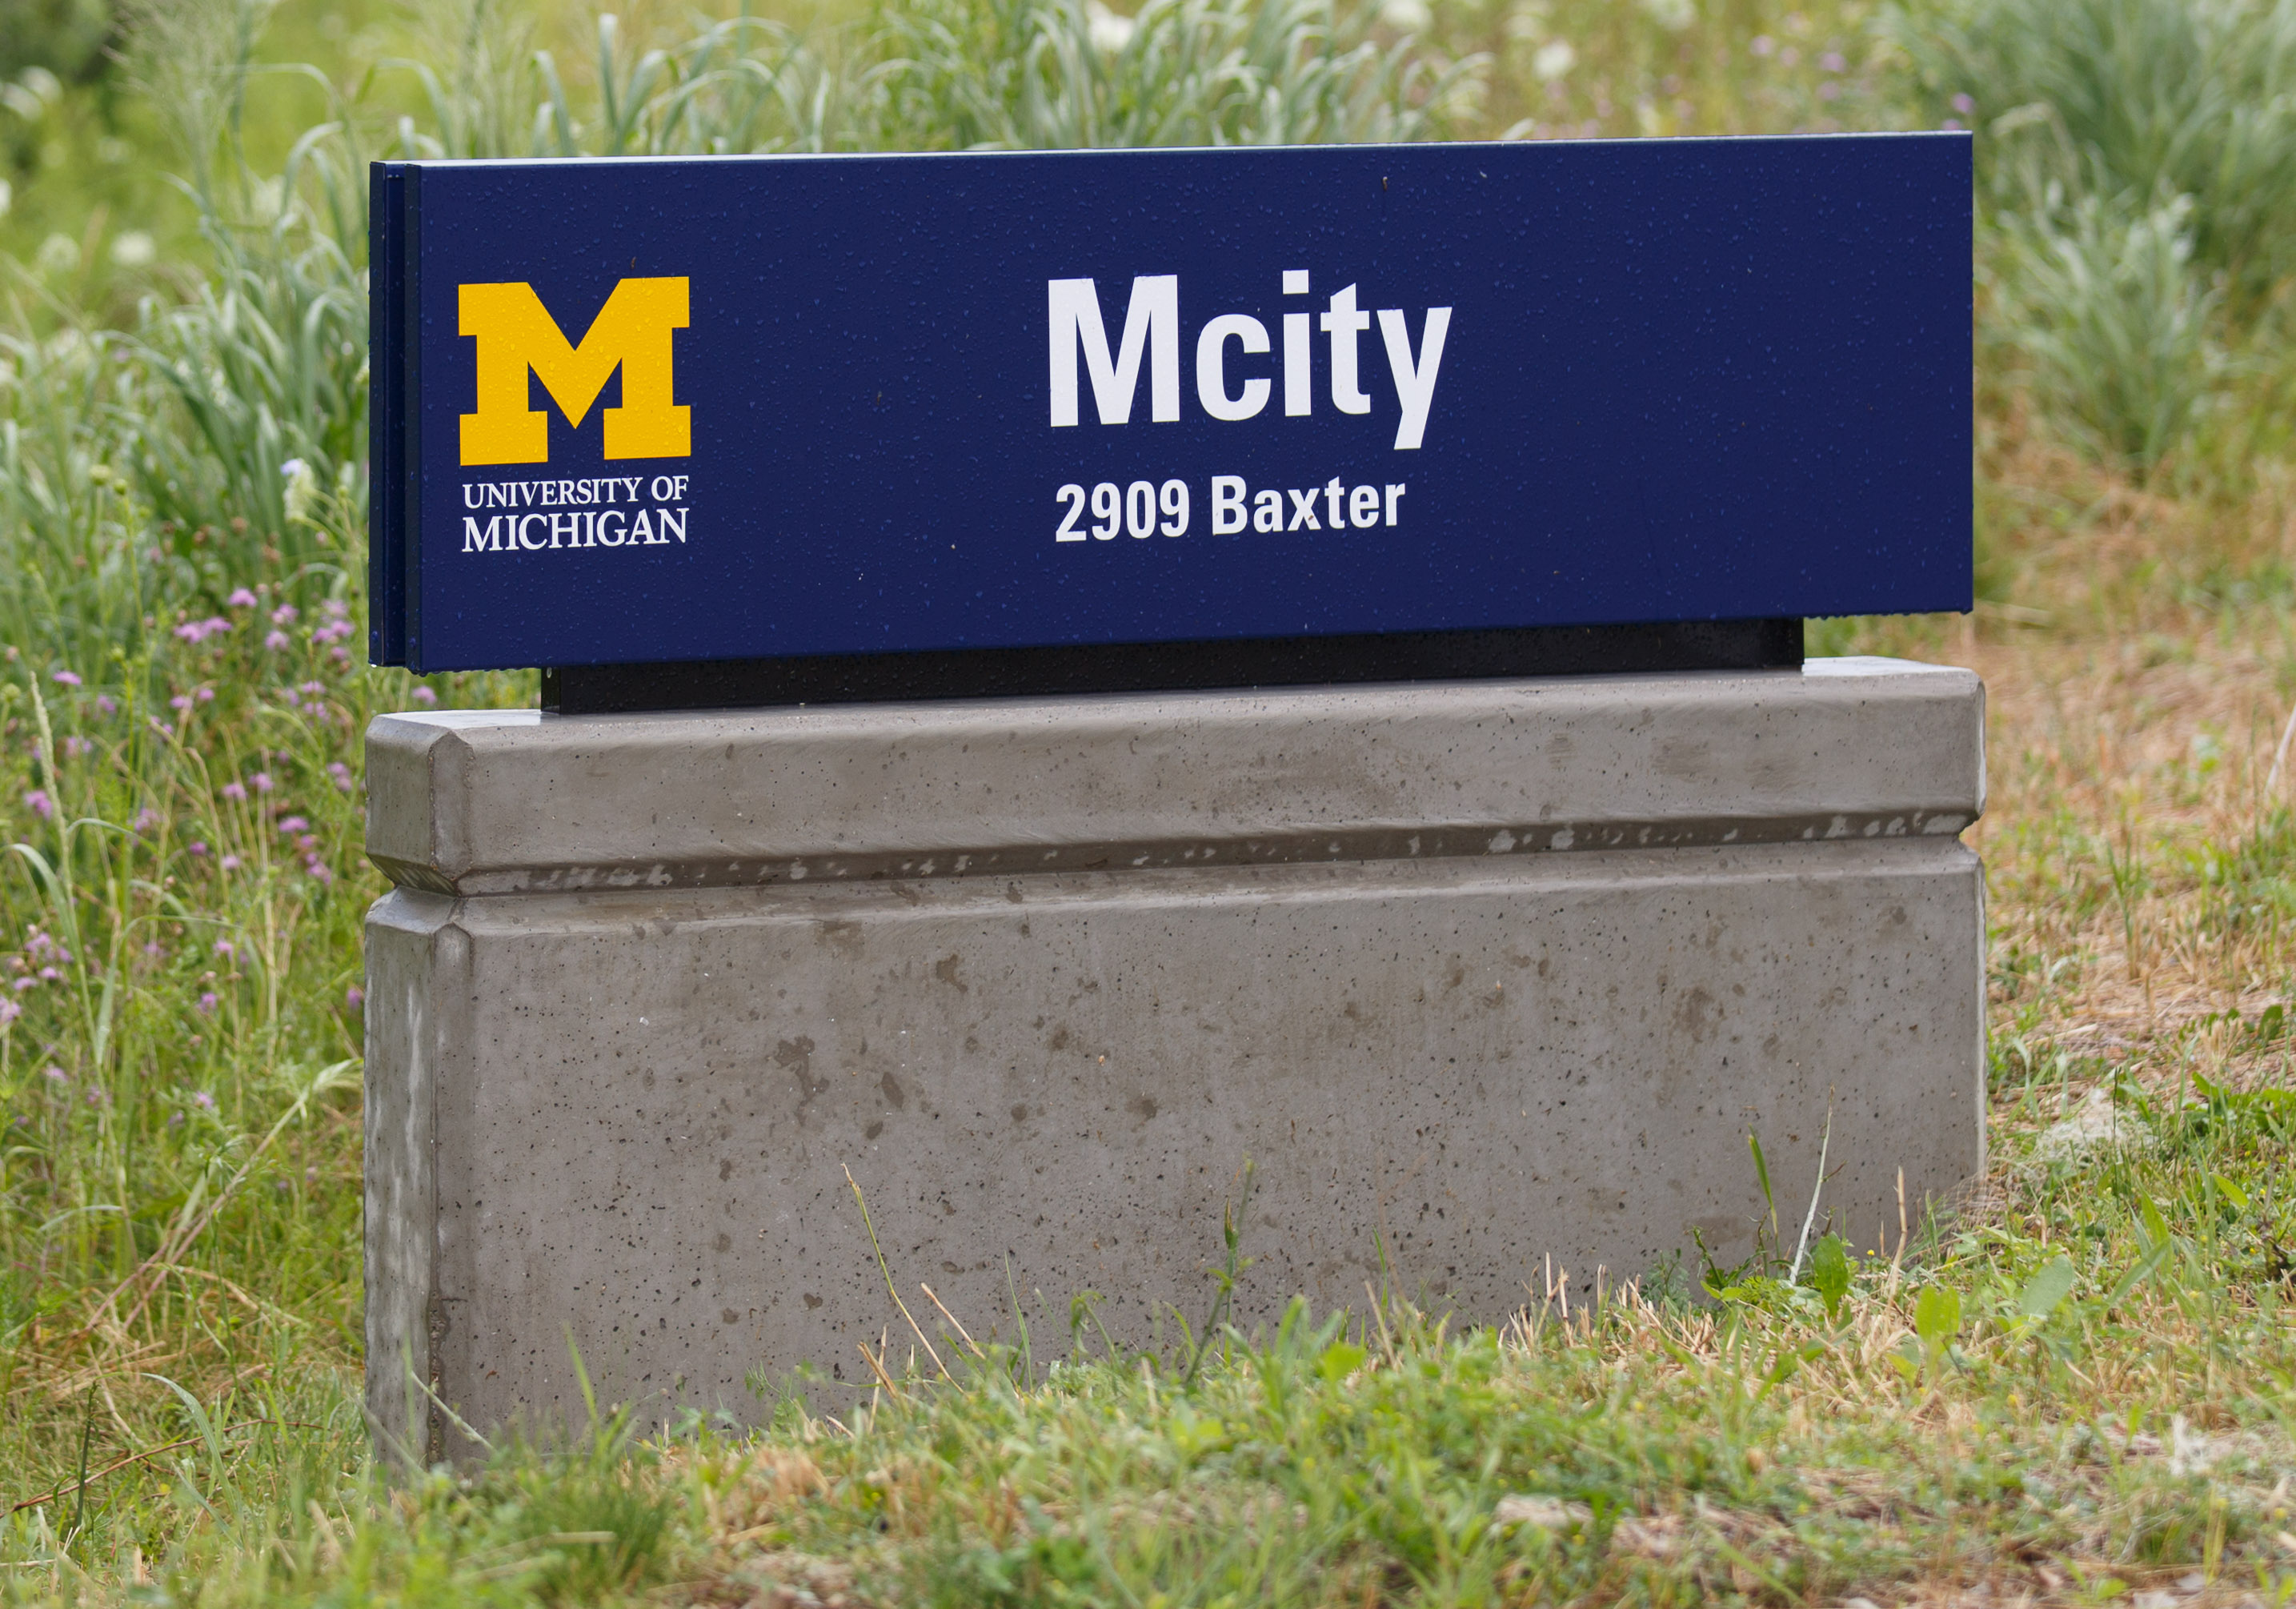 The University of Michigan's Mcity site is designed to test self-driving cars and car-to-car communications.